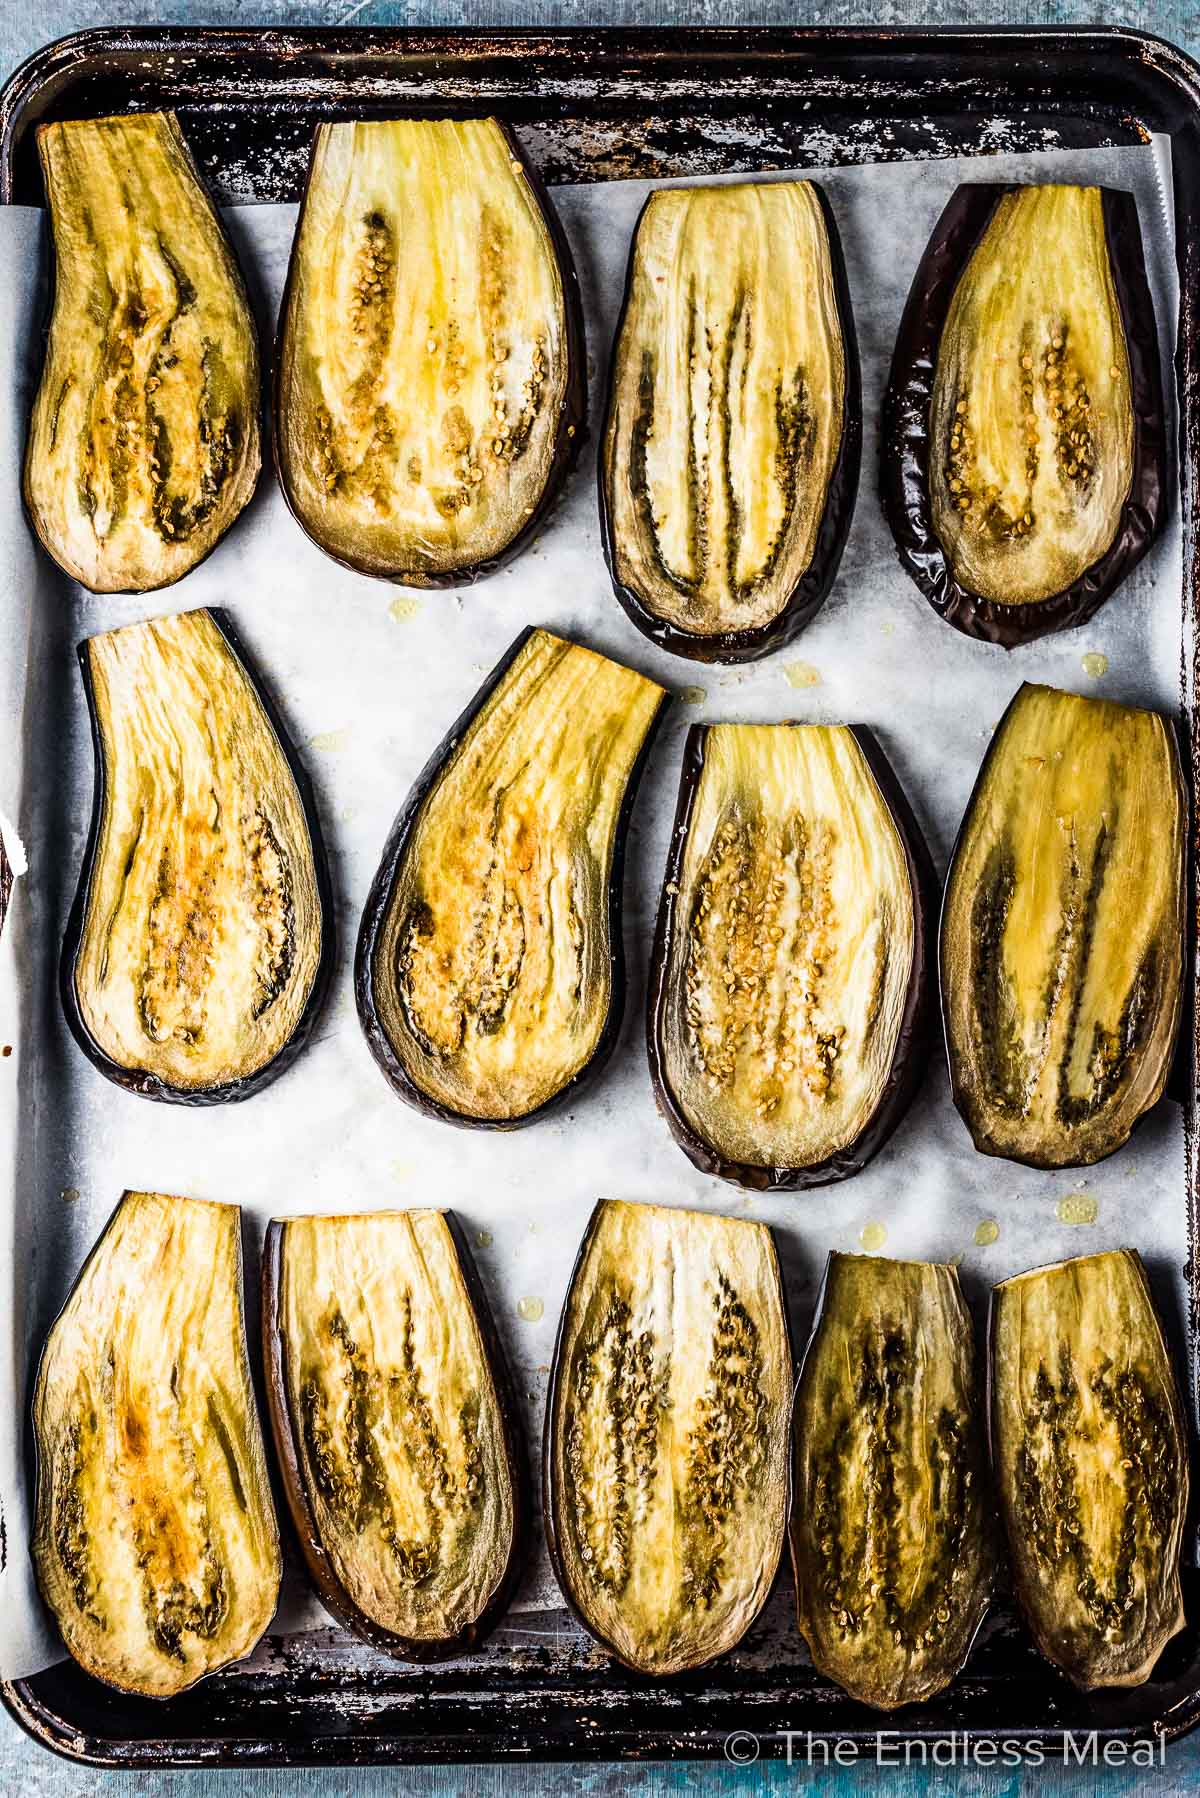 Unbreaded baked eggplant slices on a baking sheet.